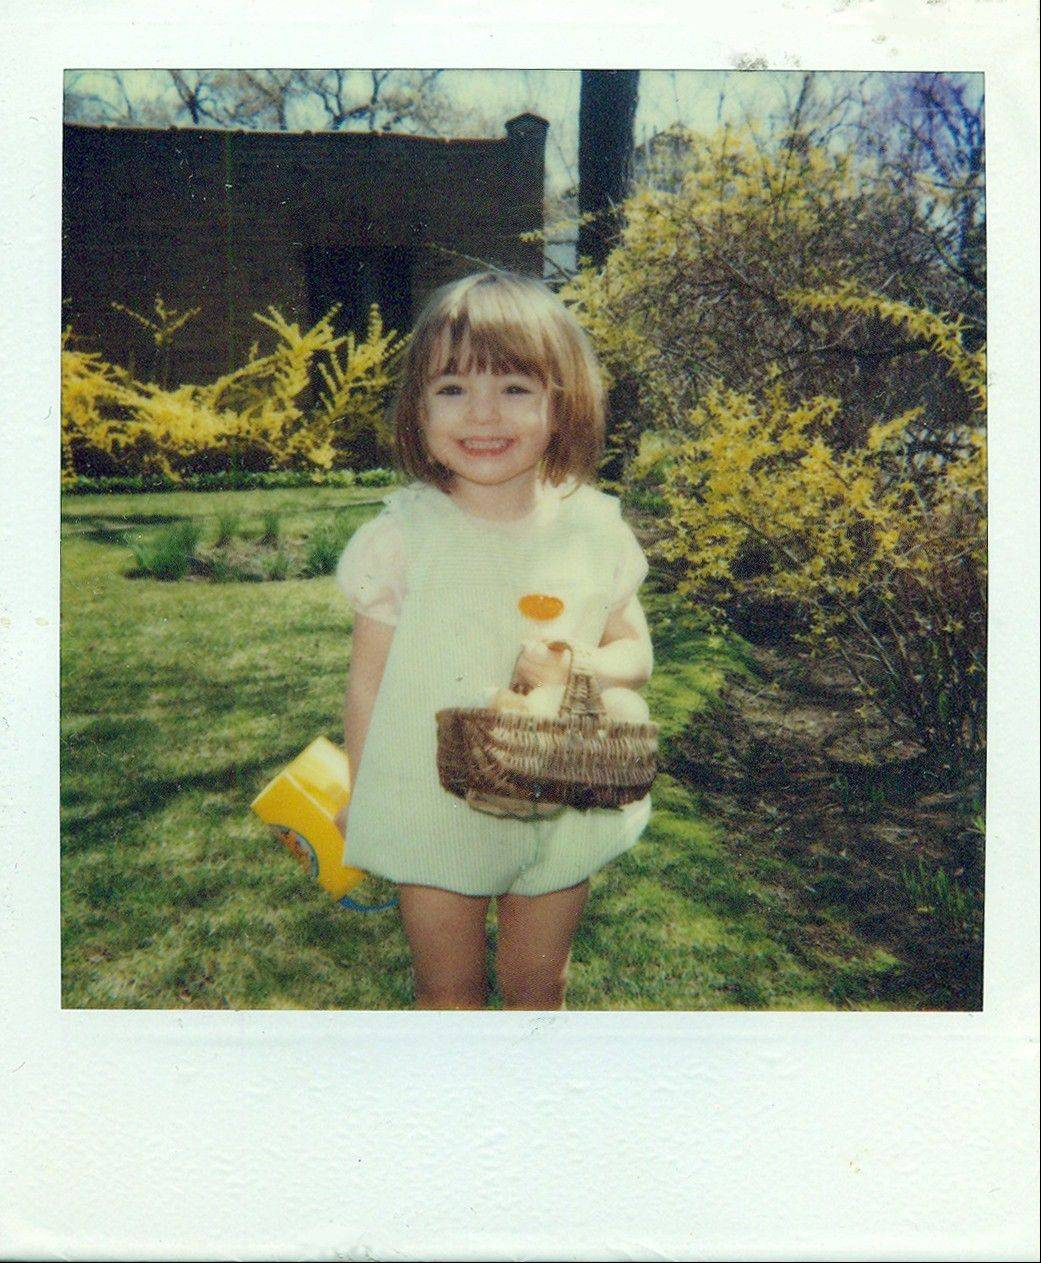 All smiles on this Easter egg hunt from her childhood, Leigh Stein of Lombard now wins praise for a writing style that combines humor with dark elements.